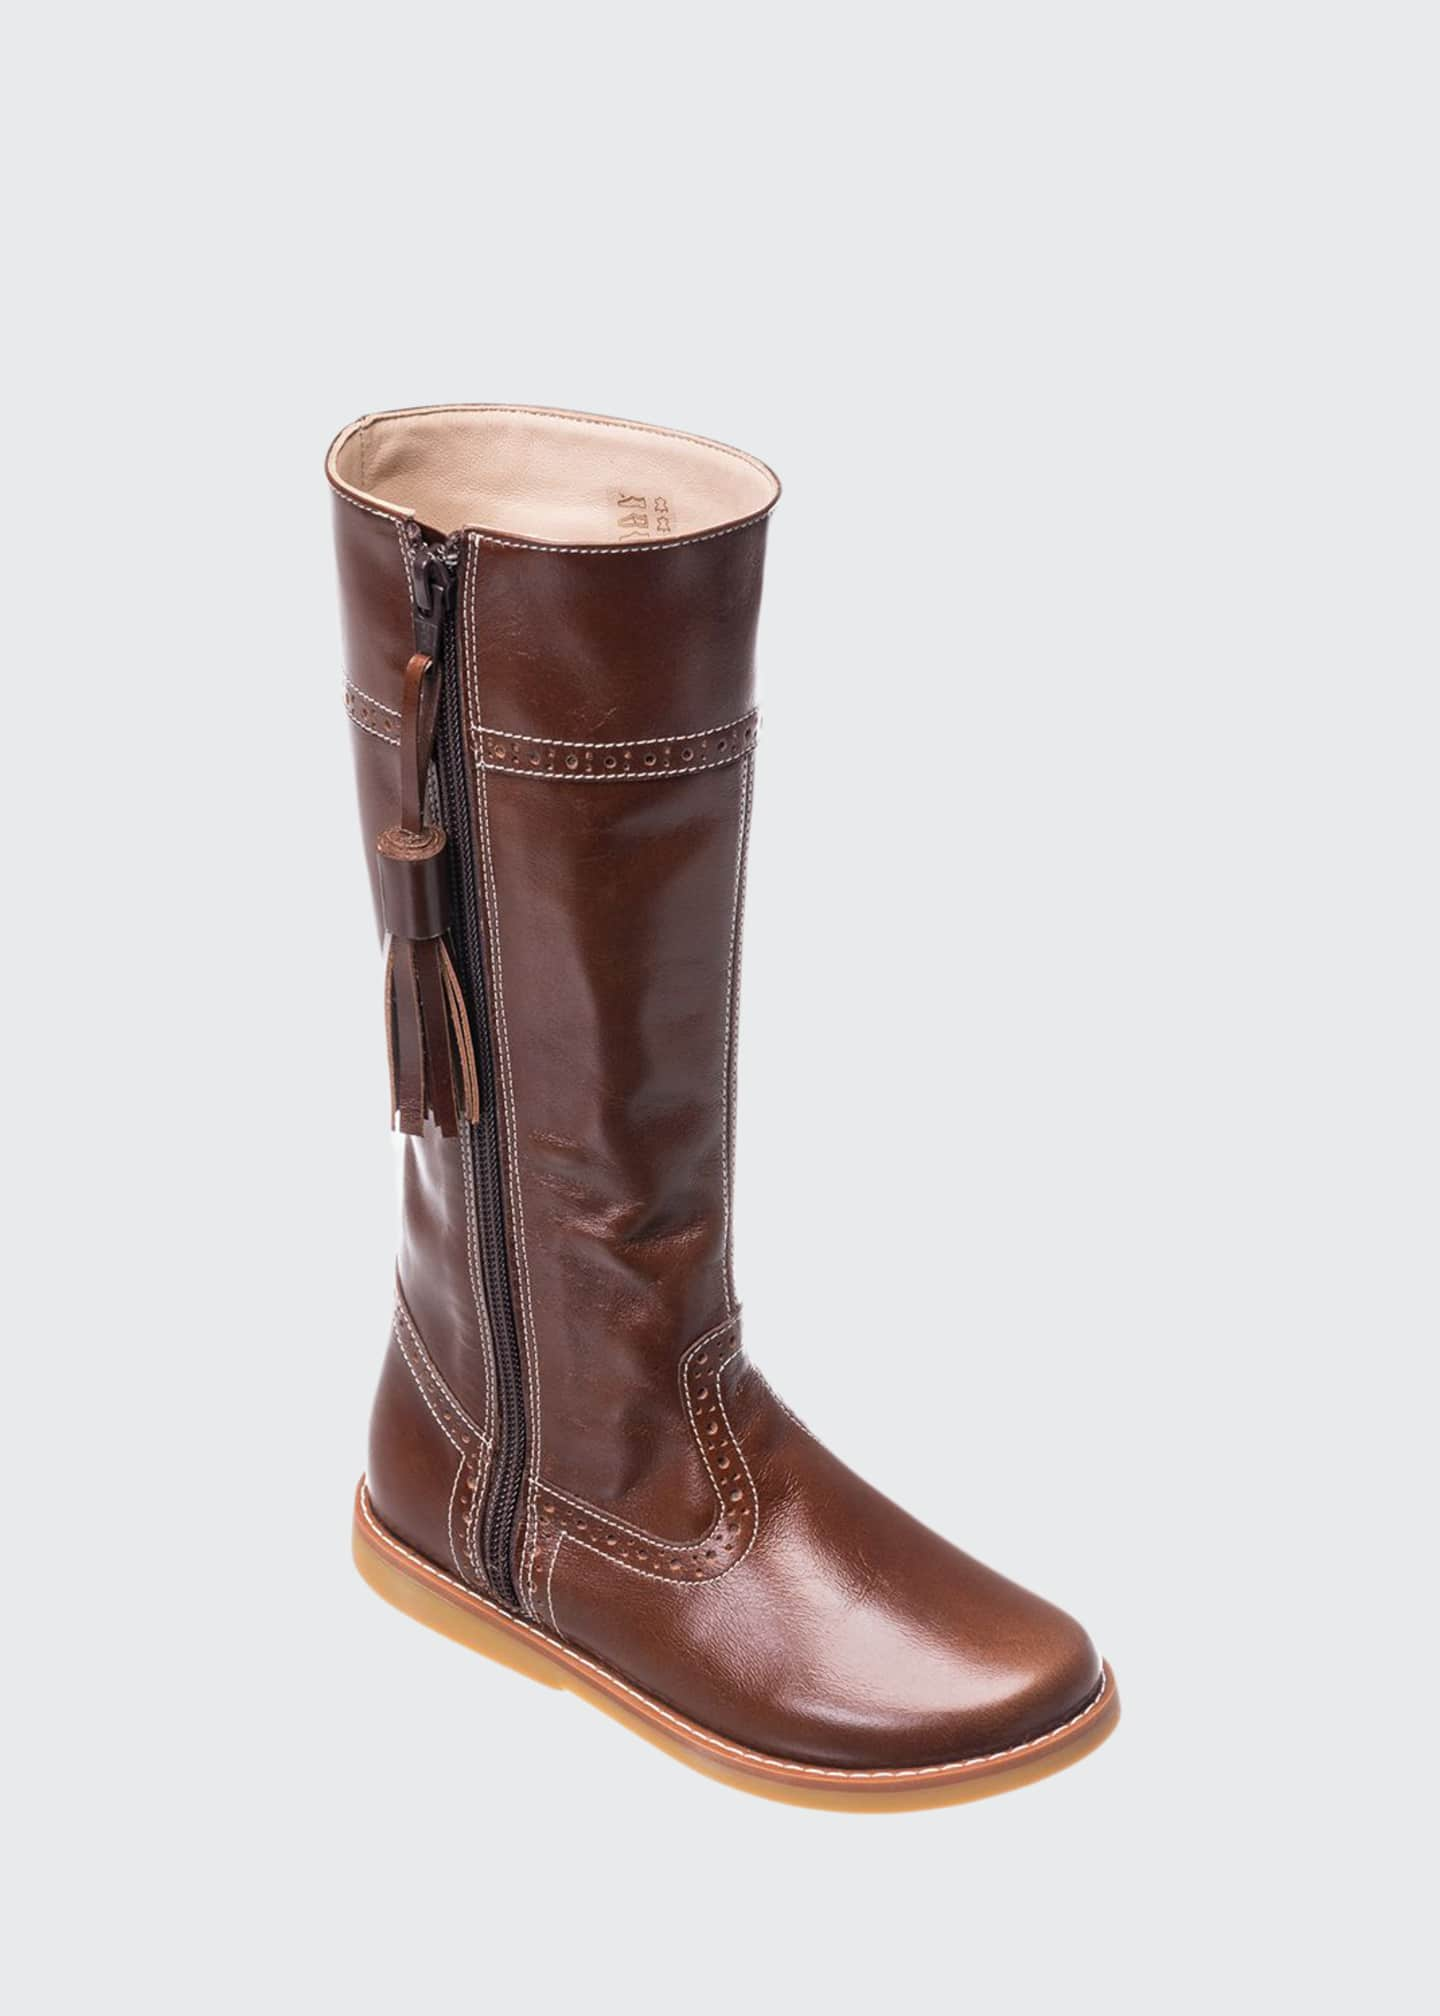 Elephantito Girl's Leather Riding Boots, Kids